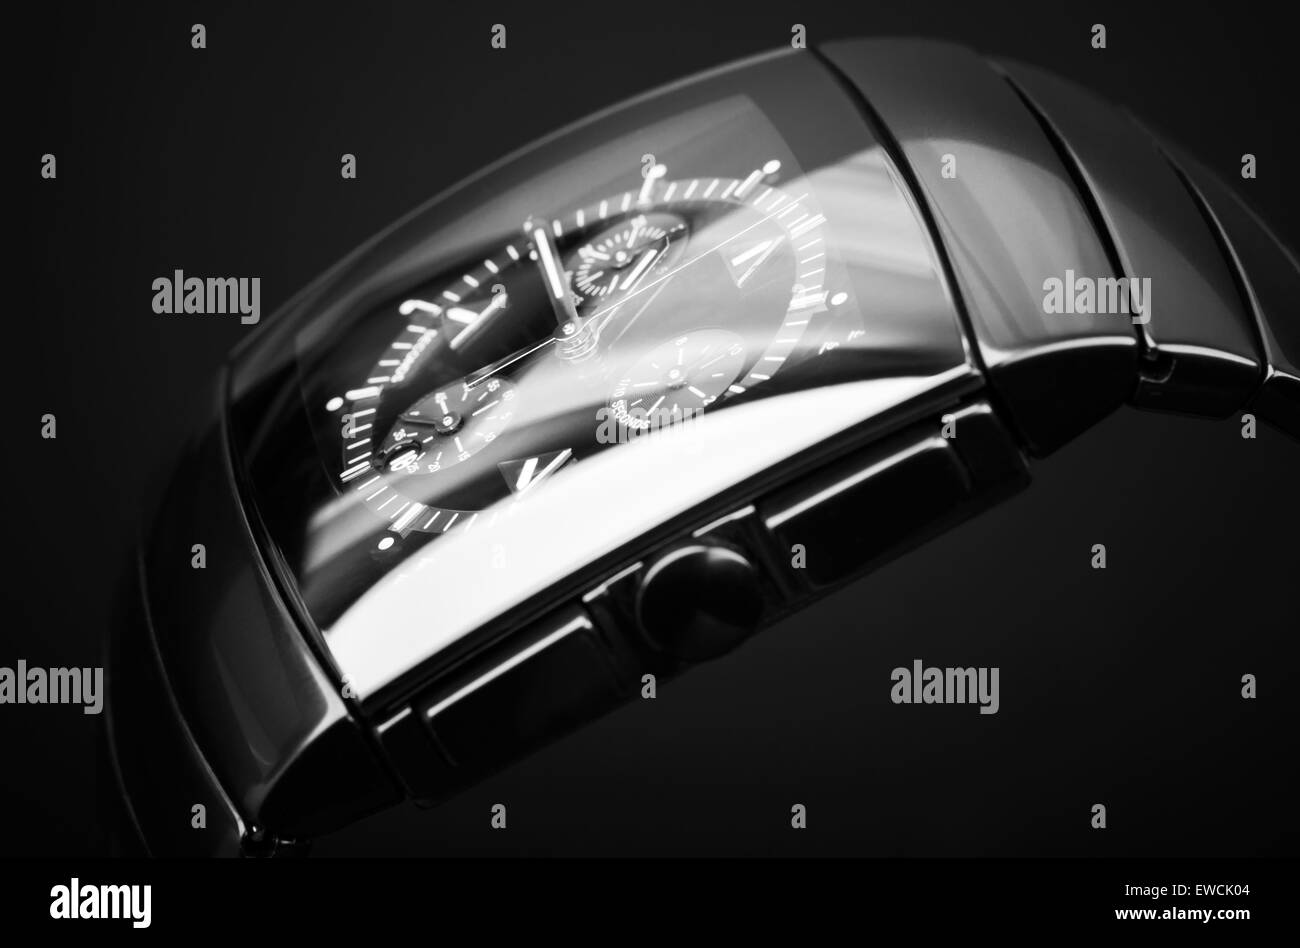 Luxury mens chronograph watch made of black high-tech ceramics on black background. Closeup studio photo with selective - Stock Image